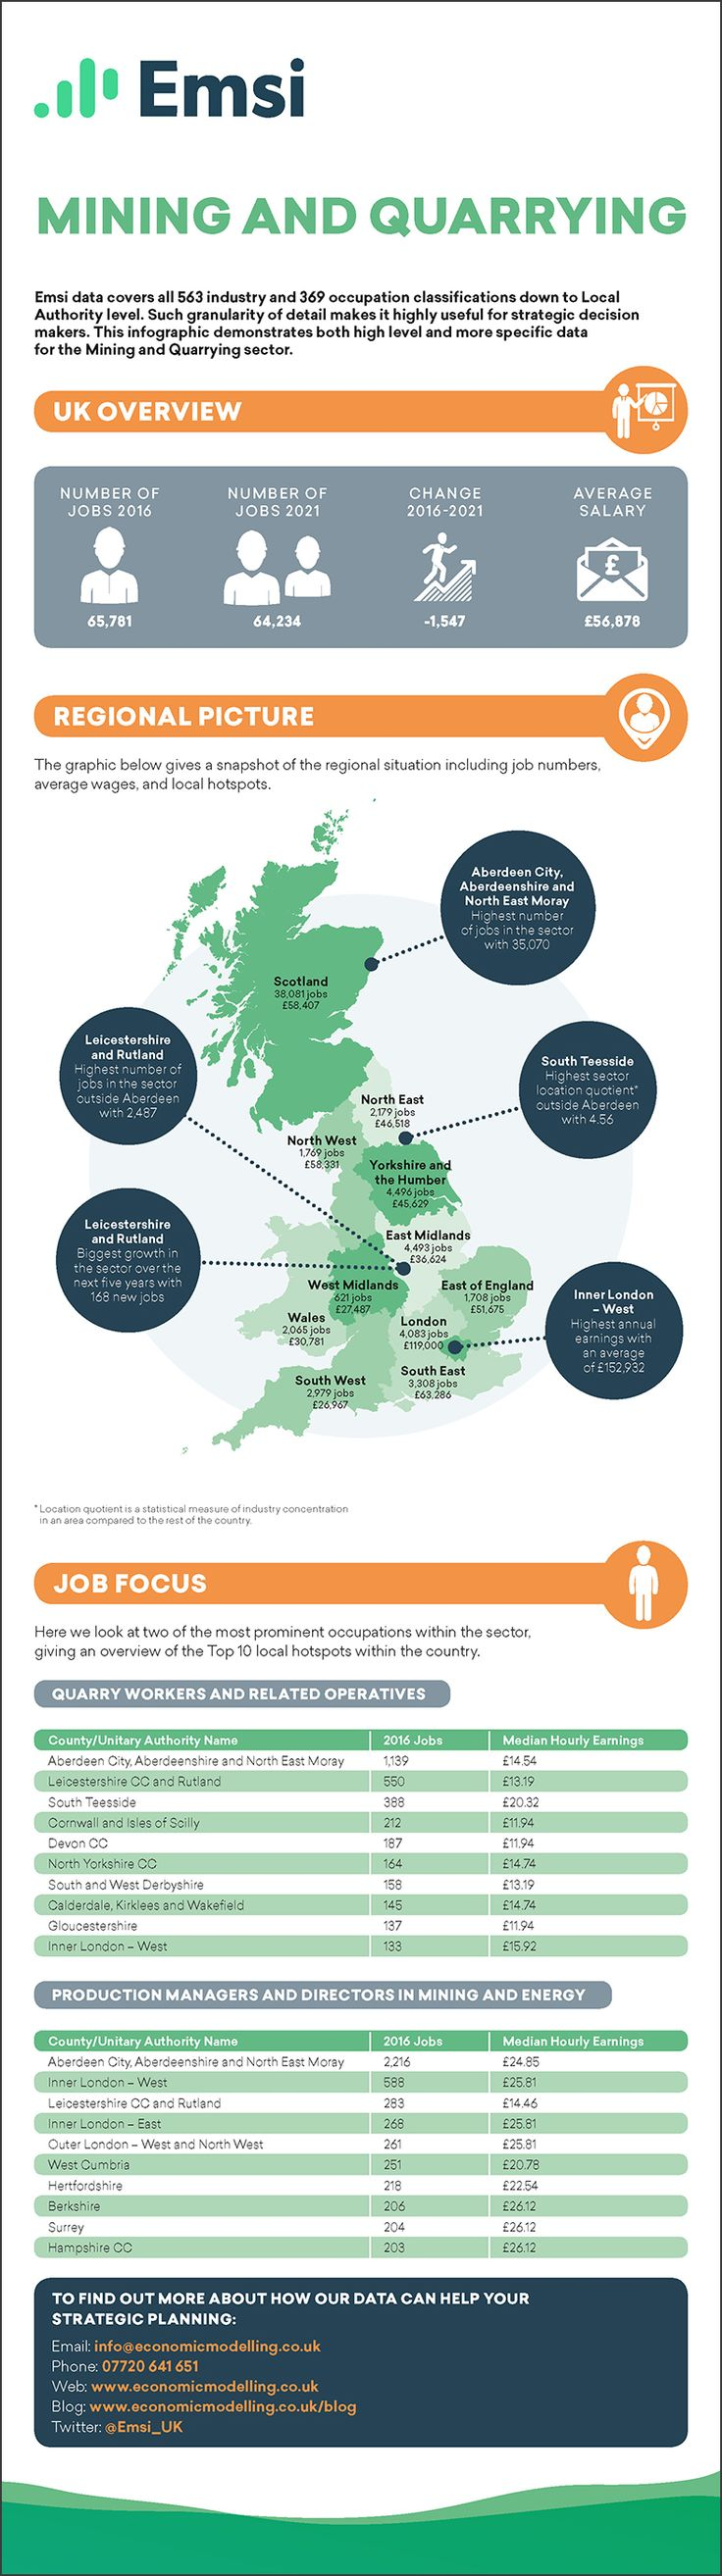 Mining and Quarrying EMSI Career Infographic